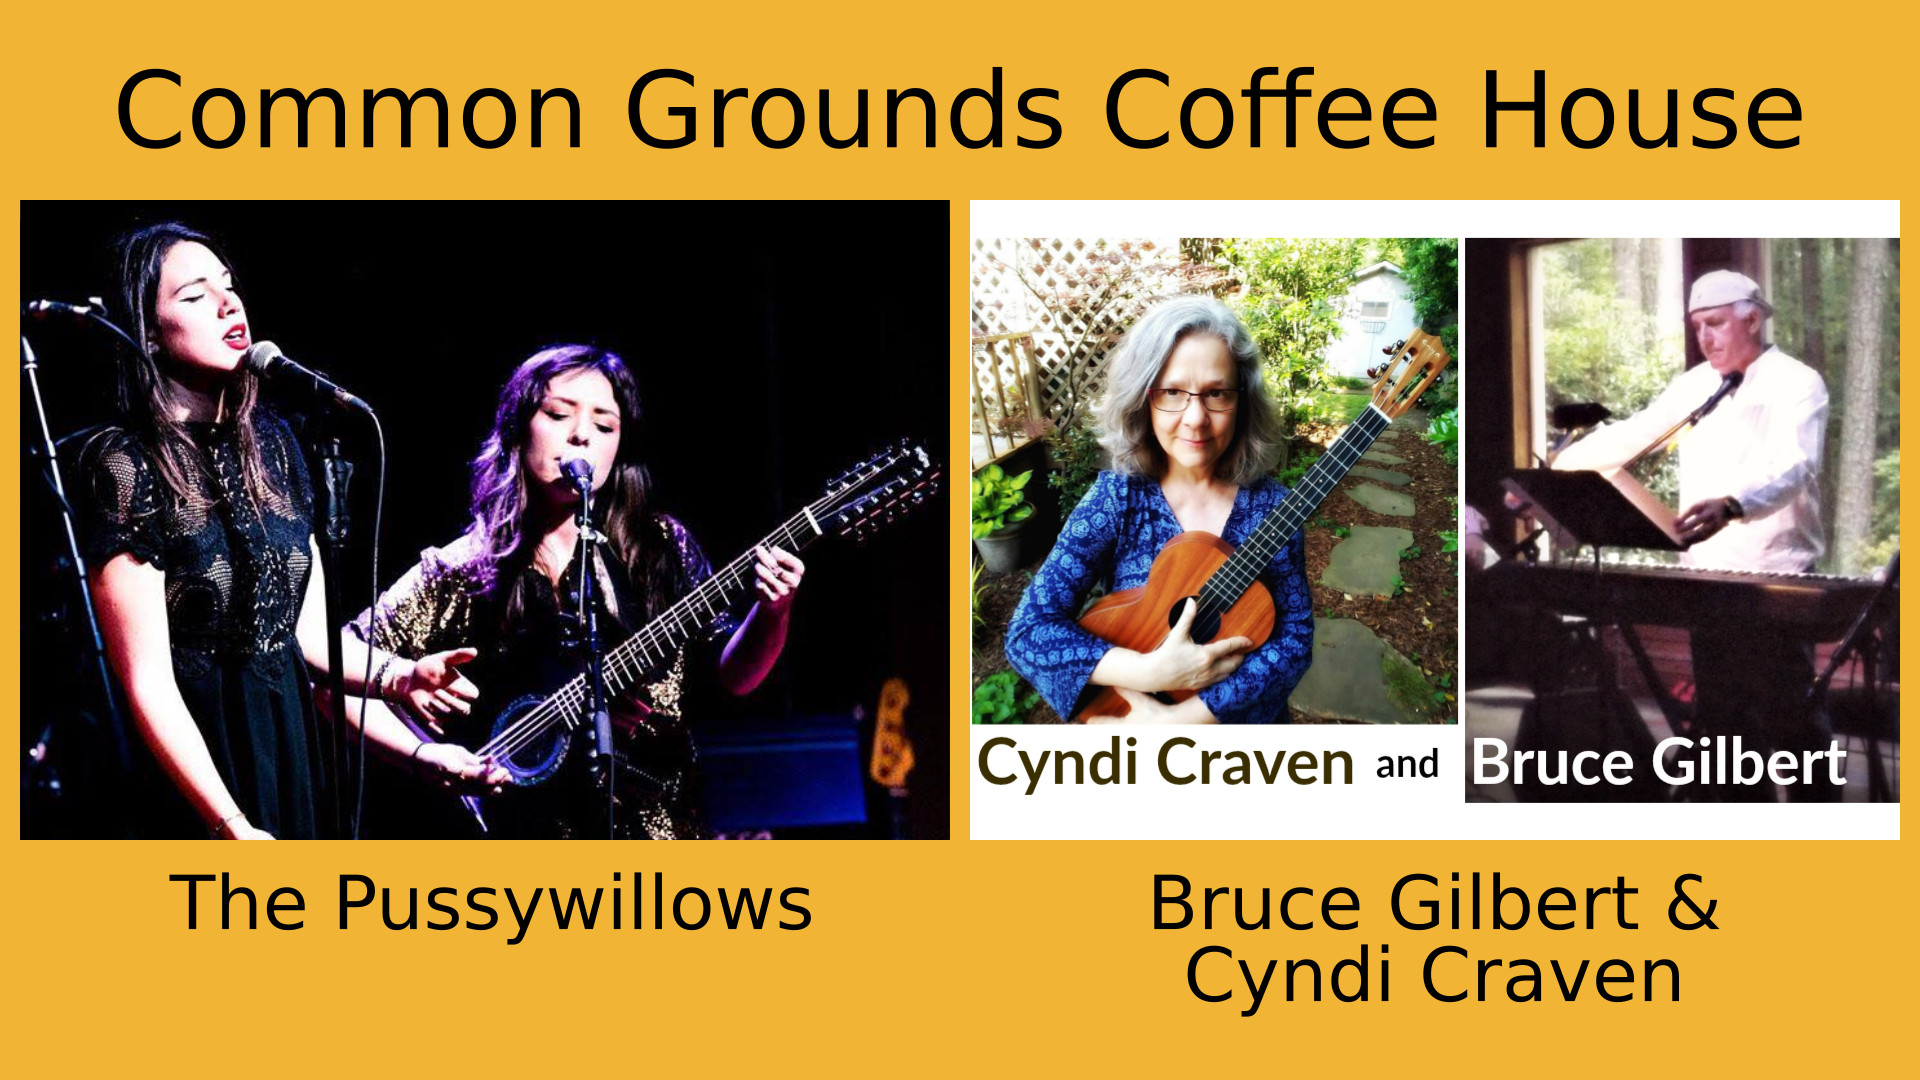 The Pussywillows | Bruce Gilbert & Cyndi Craven